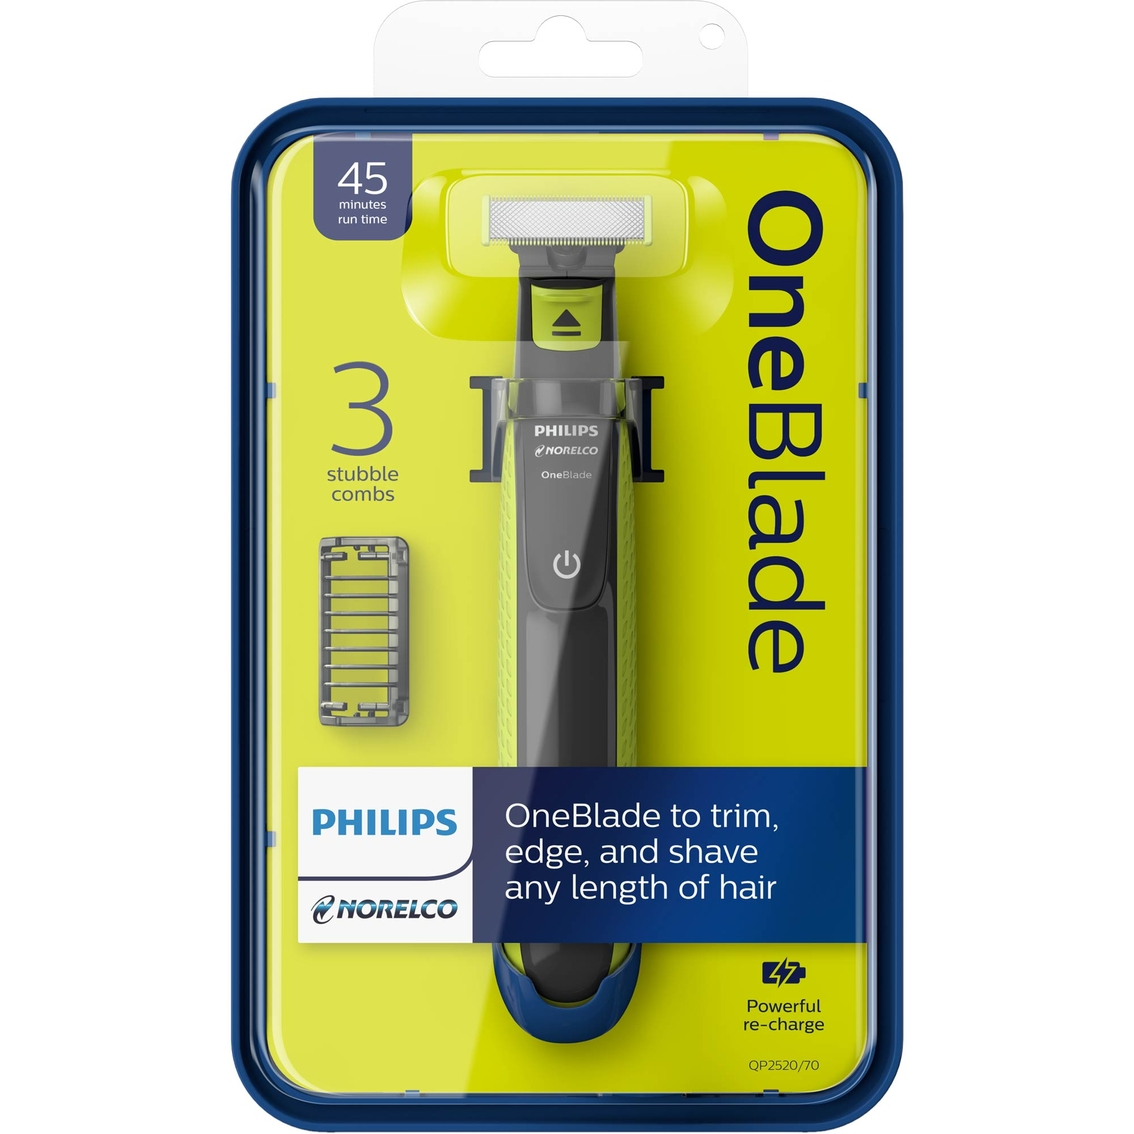 Philips Norelco Oneblade Electric Razor | Gifts Under $50 | Holiday ...